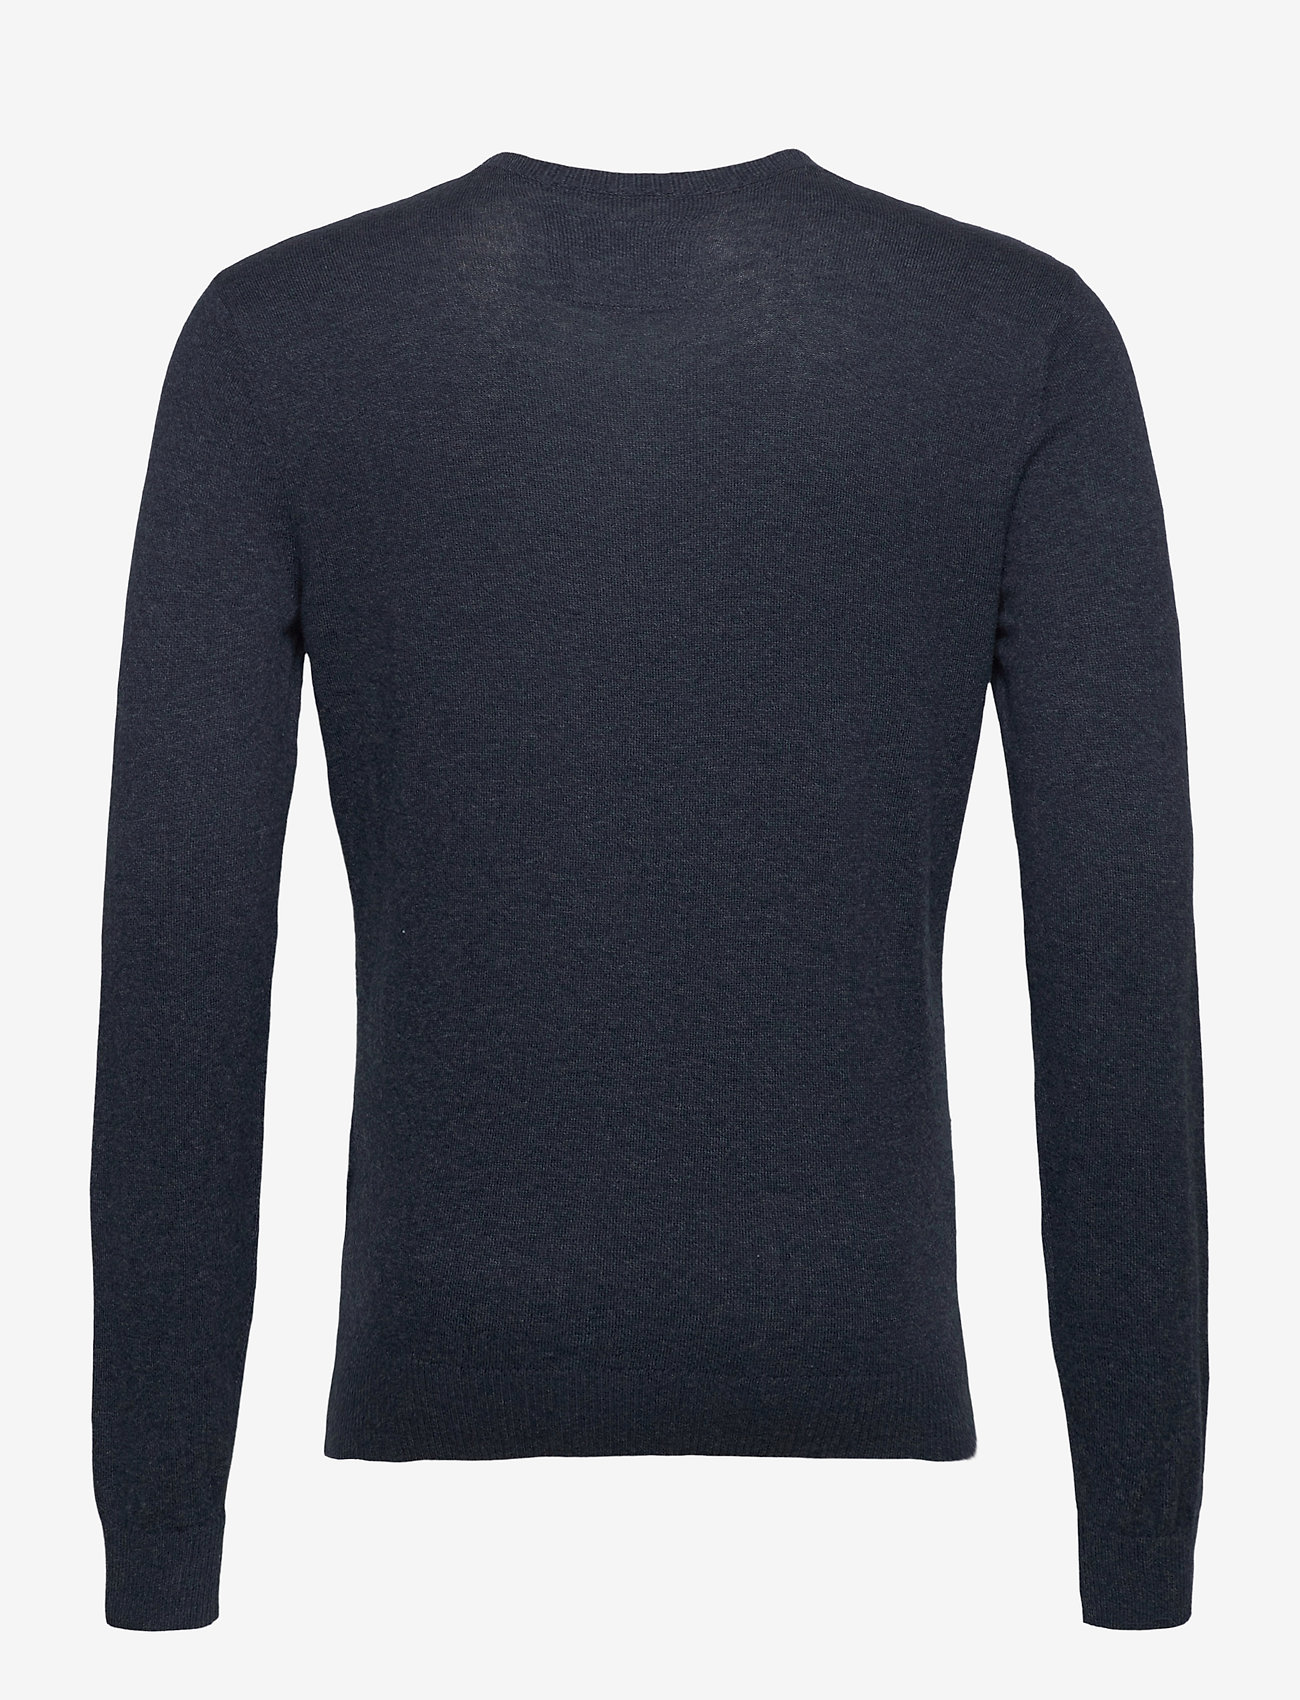 Hollister - HCo. GUYS SWEATERS - tricots basiques - navy sd/texture - 1